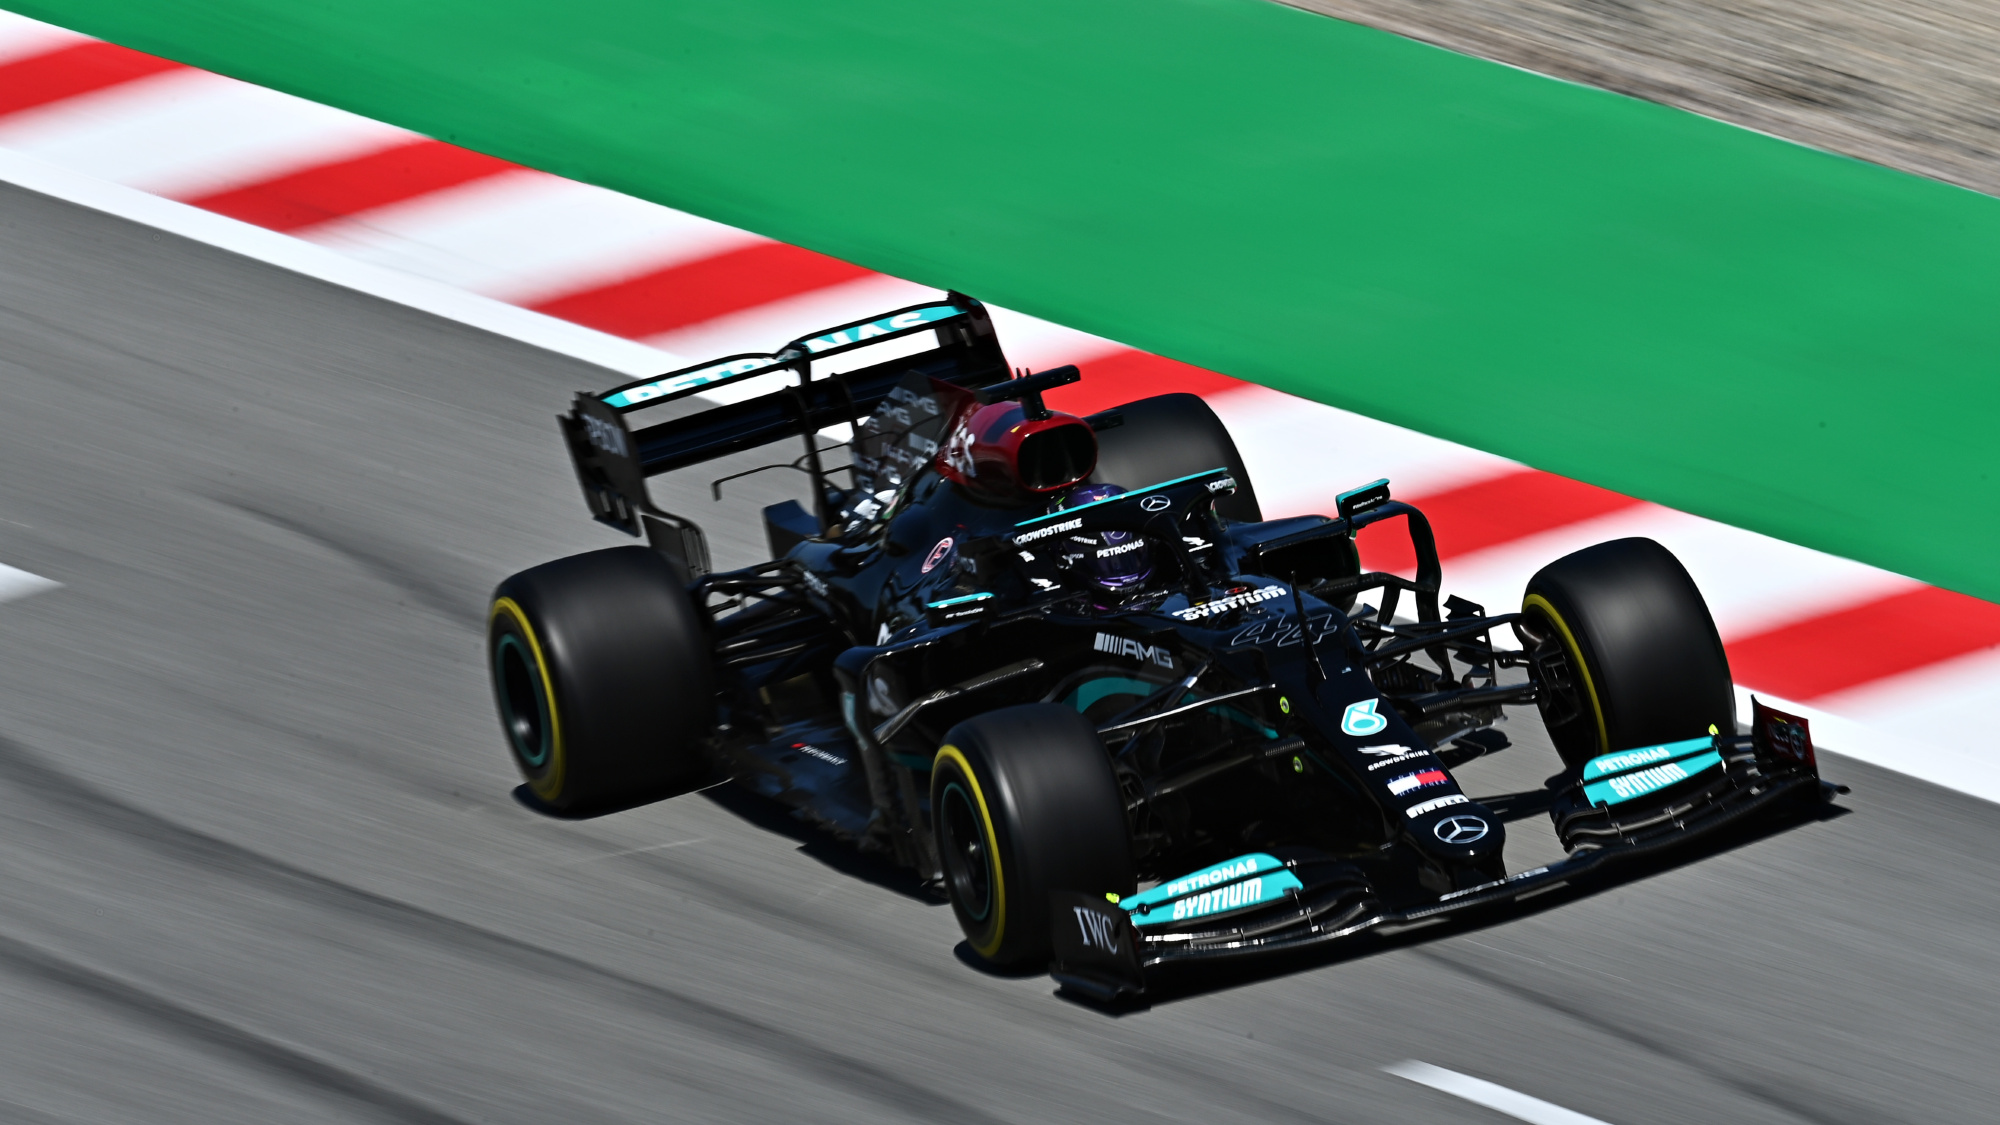 Hamilton makes history with 100th pole at 2021 Spanish GP qualifying